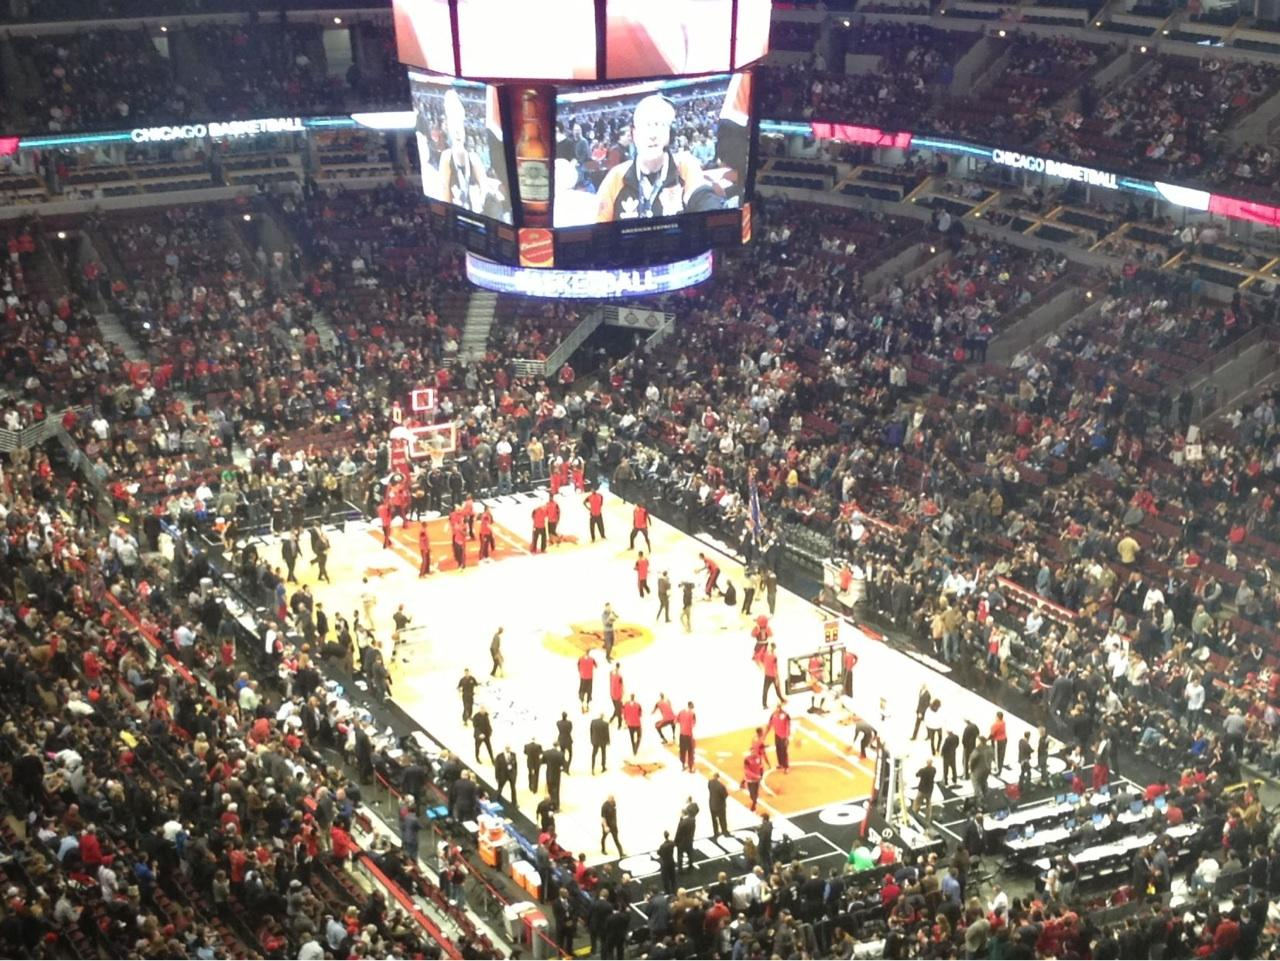 United Center Section 330 Row 17 Seat 3